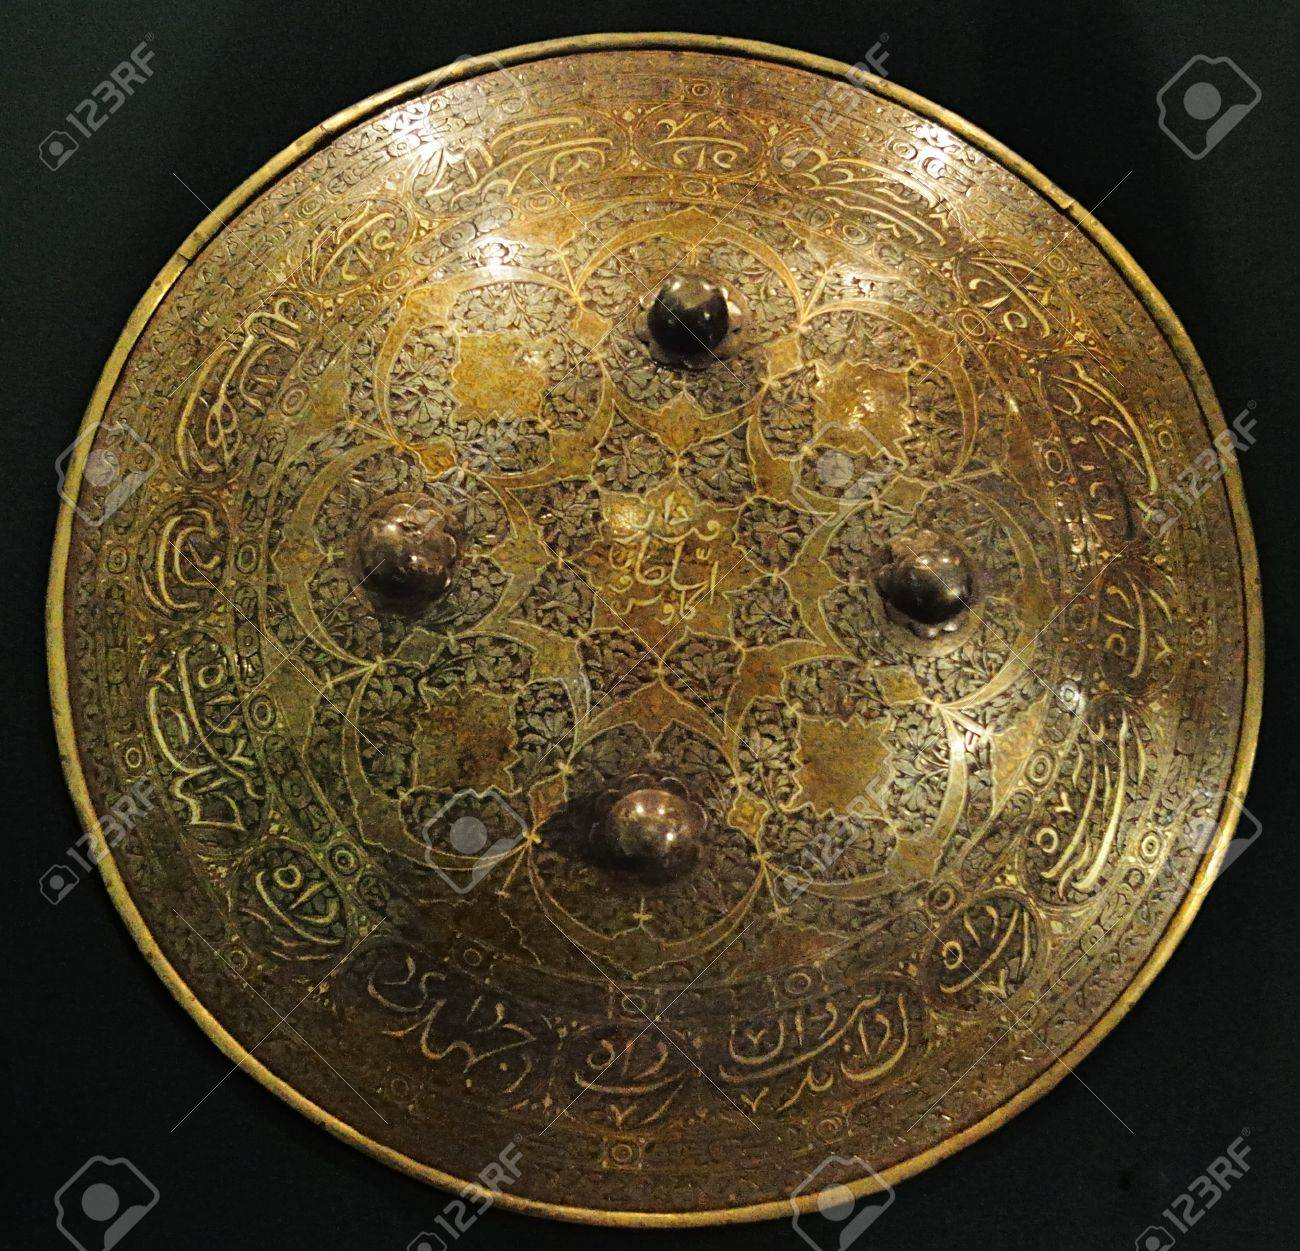 http://previews.123rf.com/images/sergieiev/sergieiev1110/sergieiev111000134/10923112-Medieval-eastern-shield-of-brass-Collection-of-National-Museum--Stock-Photo.jpg